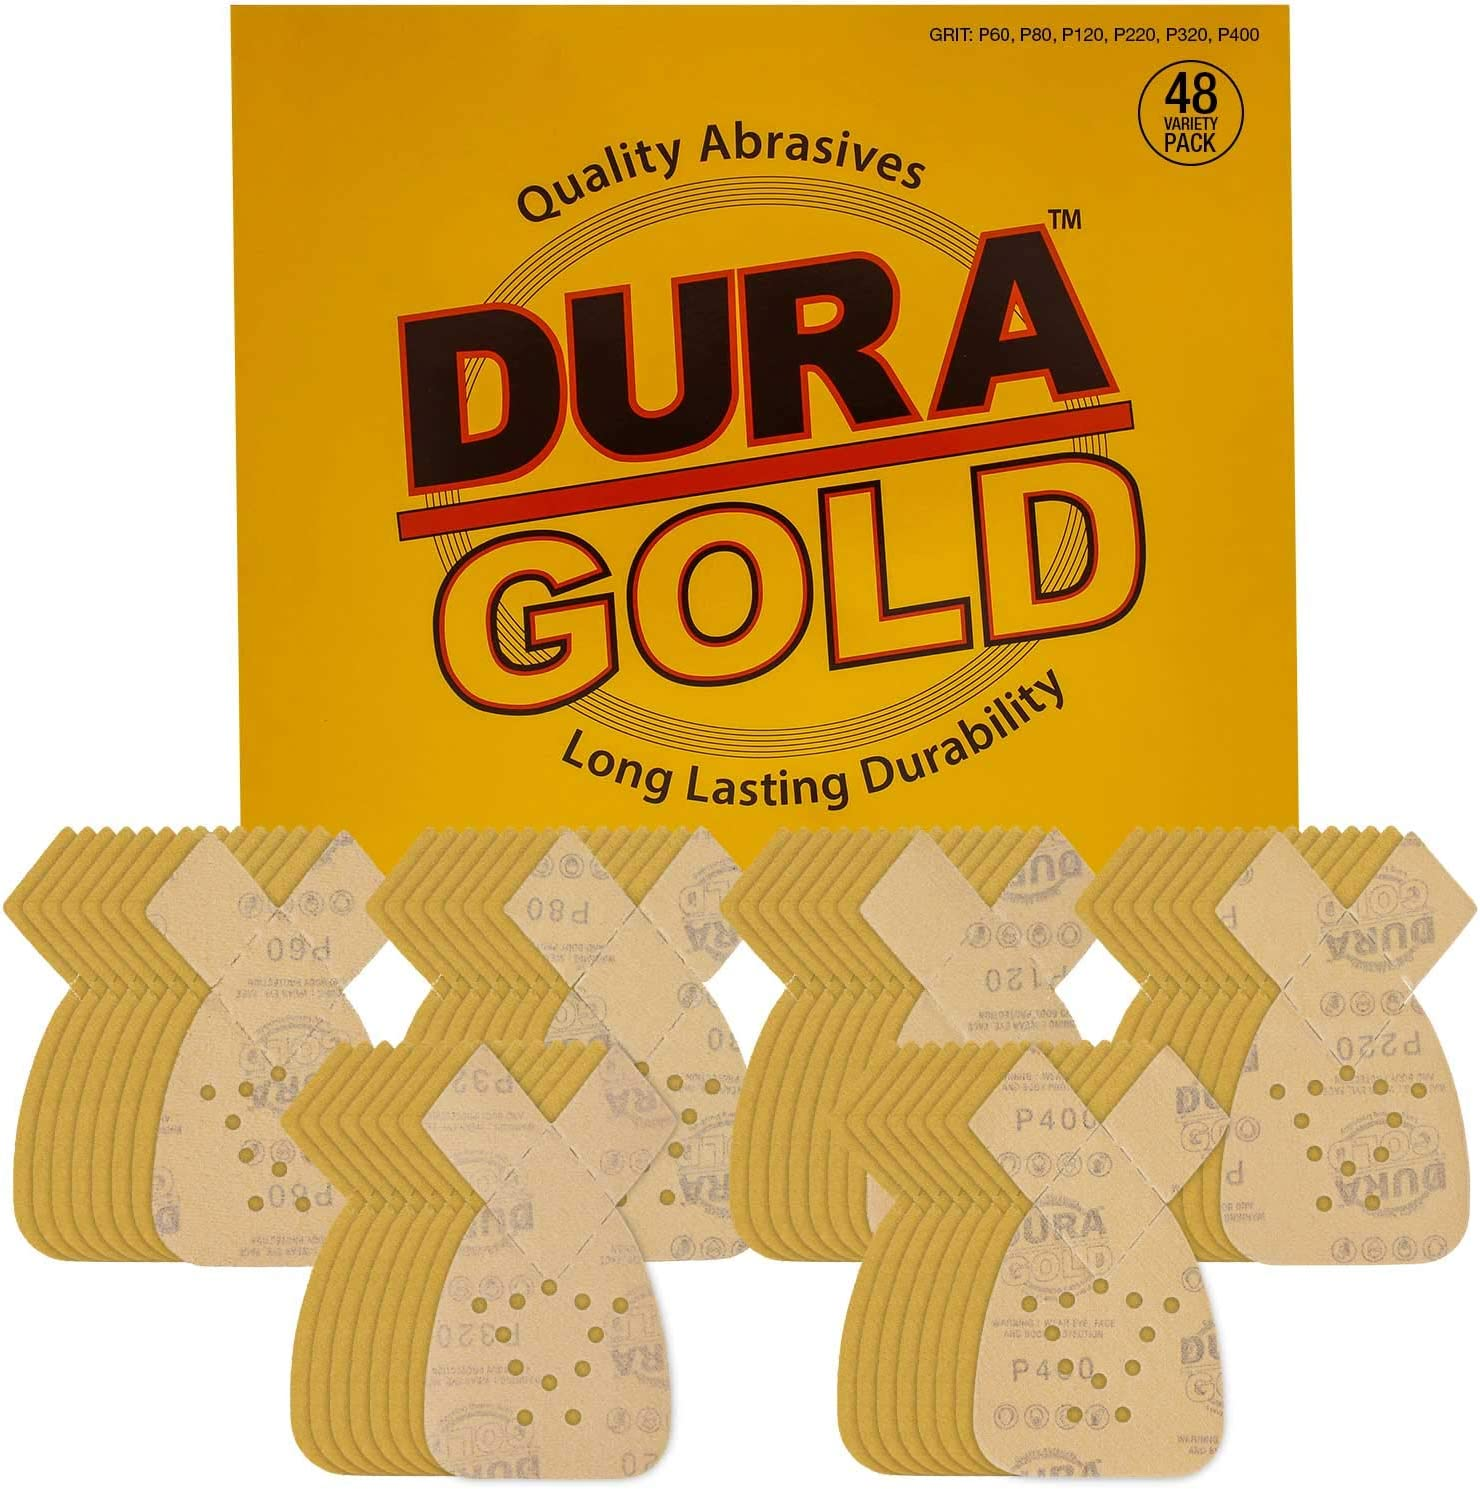 Dura-Gold - Premium Hook & Loop - 48 Sheet Variety Pack (60,80,120,220,320,400) Grit 12-Hole Hook & Loop Sanding Sheets for Mouse Sanders - Box of 48 Sheets fits Black and Decker mouse sanders